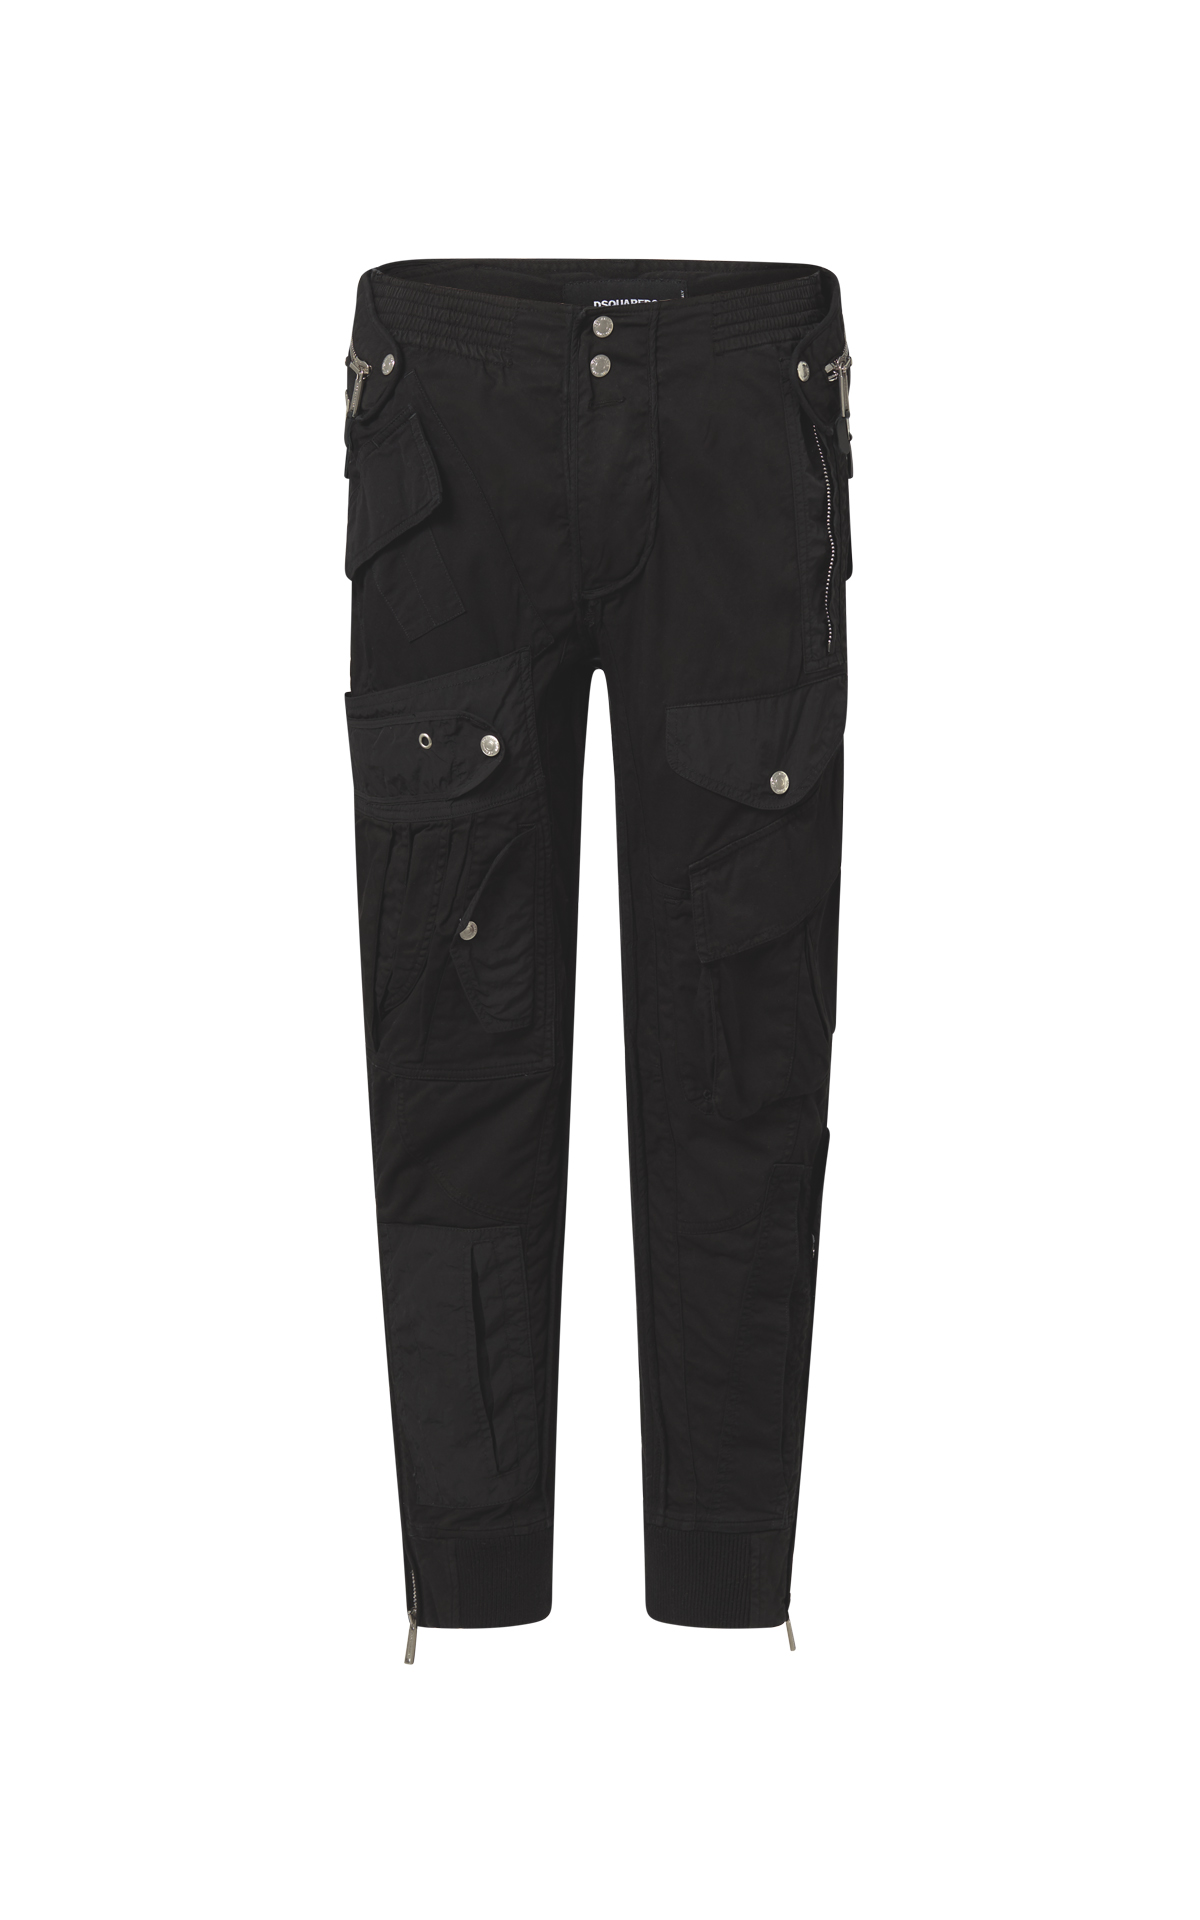 Black jeans with pockets Dsquared2